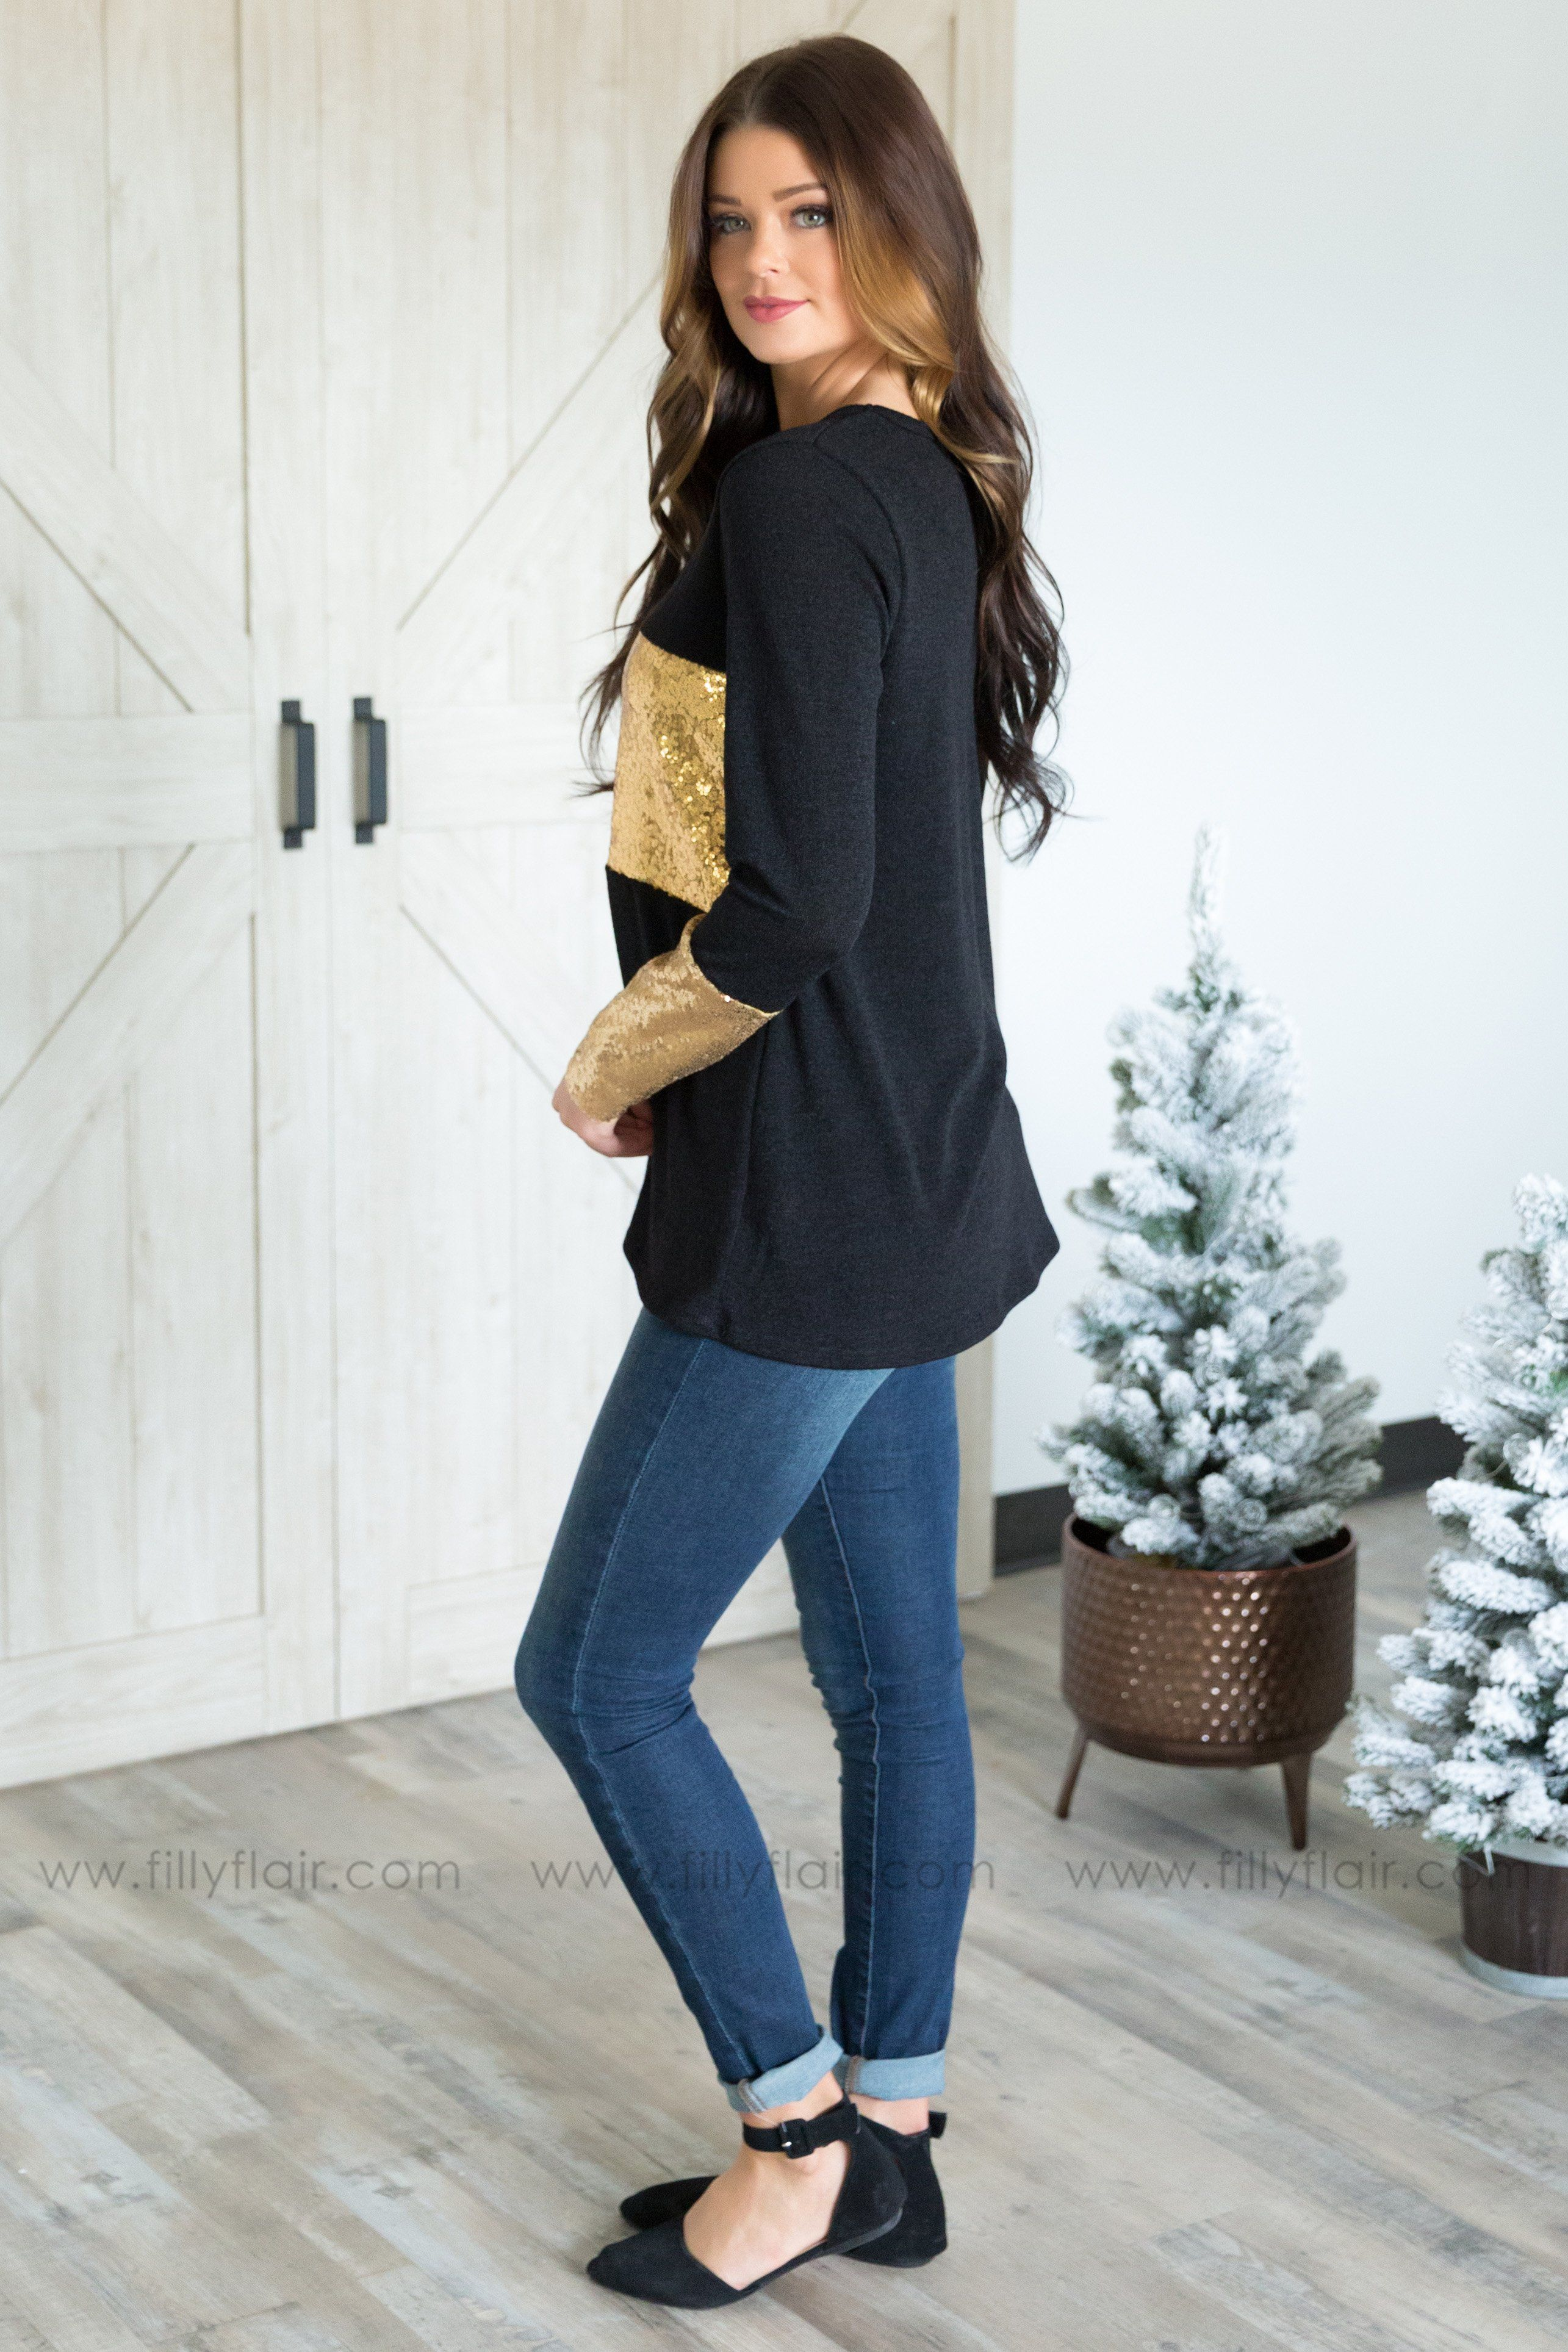 Keep on Loving You Long Sleeve Gold Sequin Detail Top In Black - Filly Flair